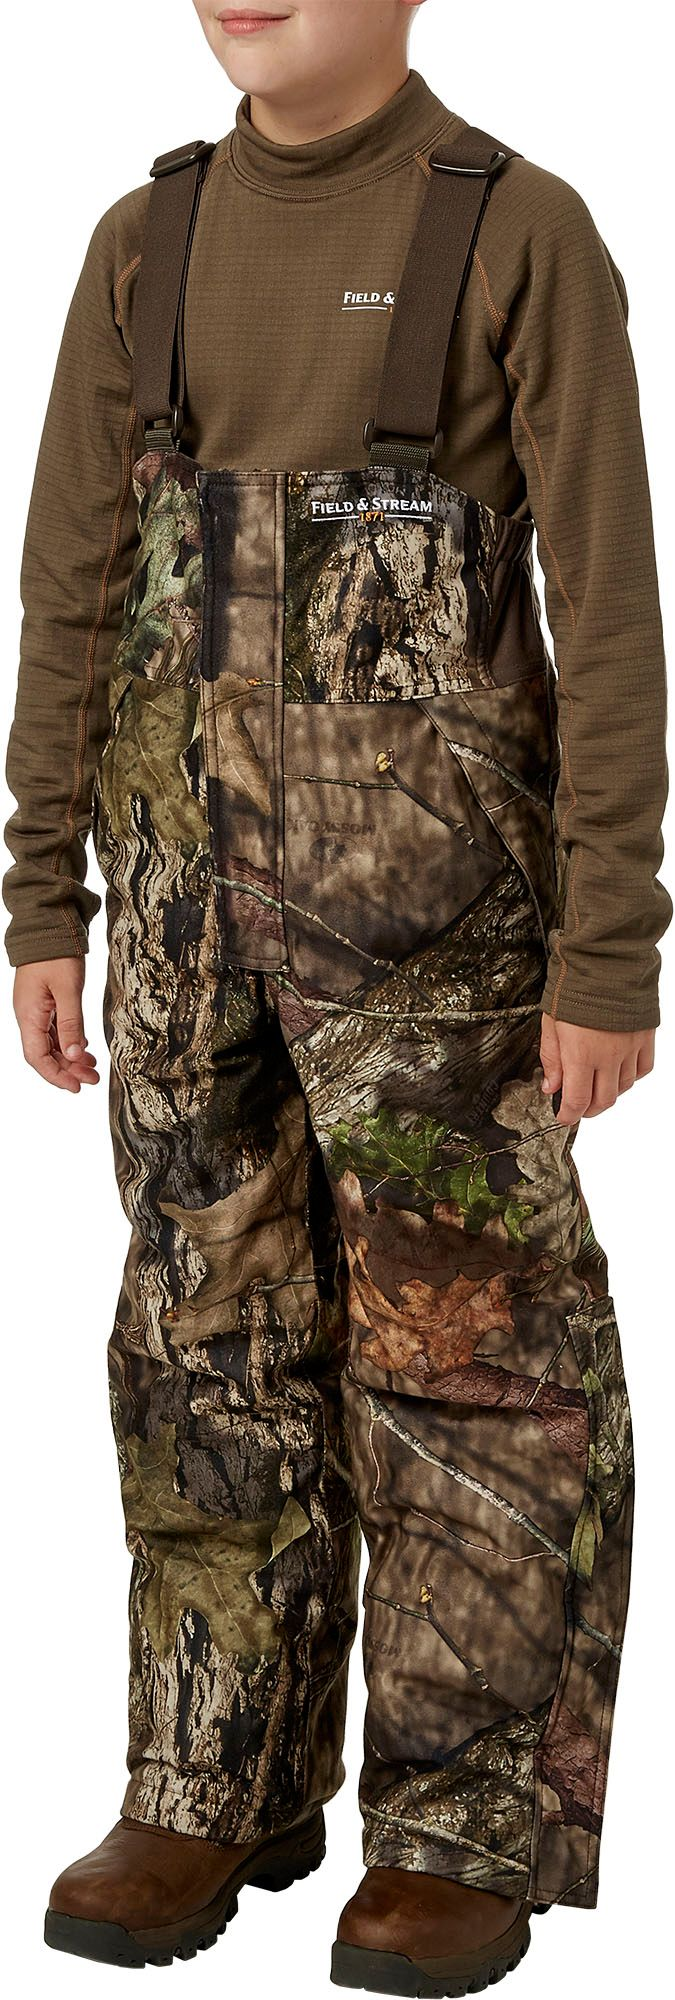 Field & Stream Youth True Pursuit Insulated Hunting Bibs, Kids Unisex, Size: XL, Mossy Oak Country thumbnail